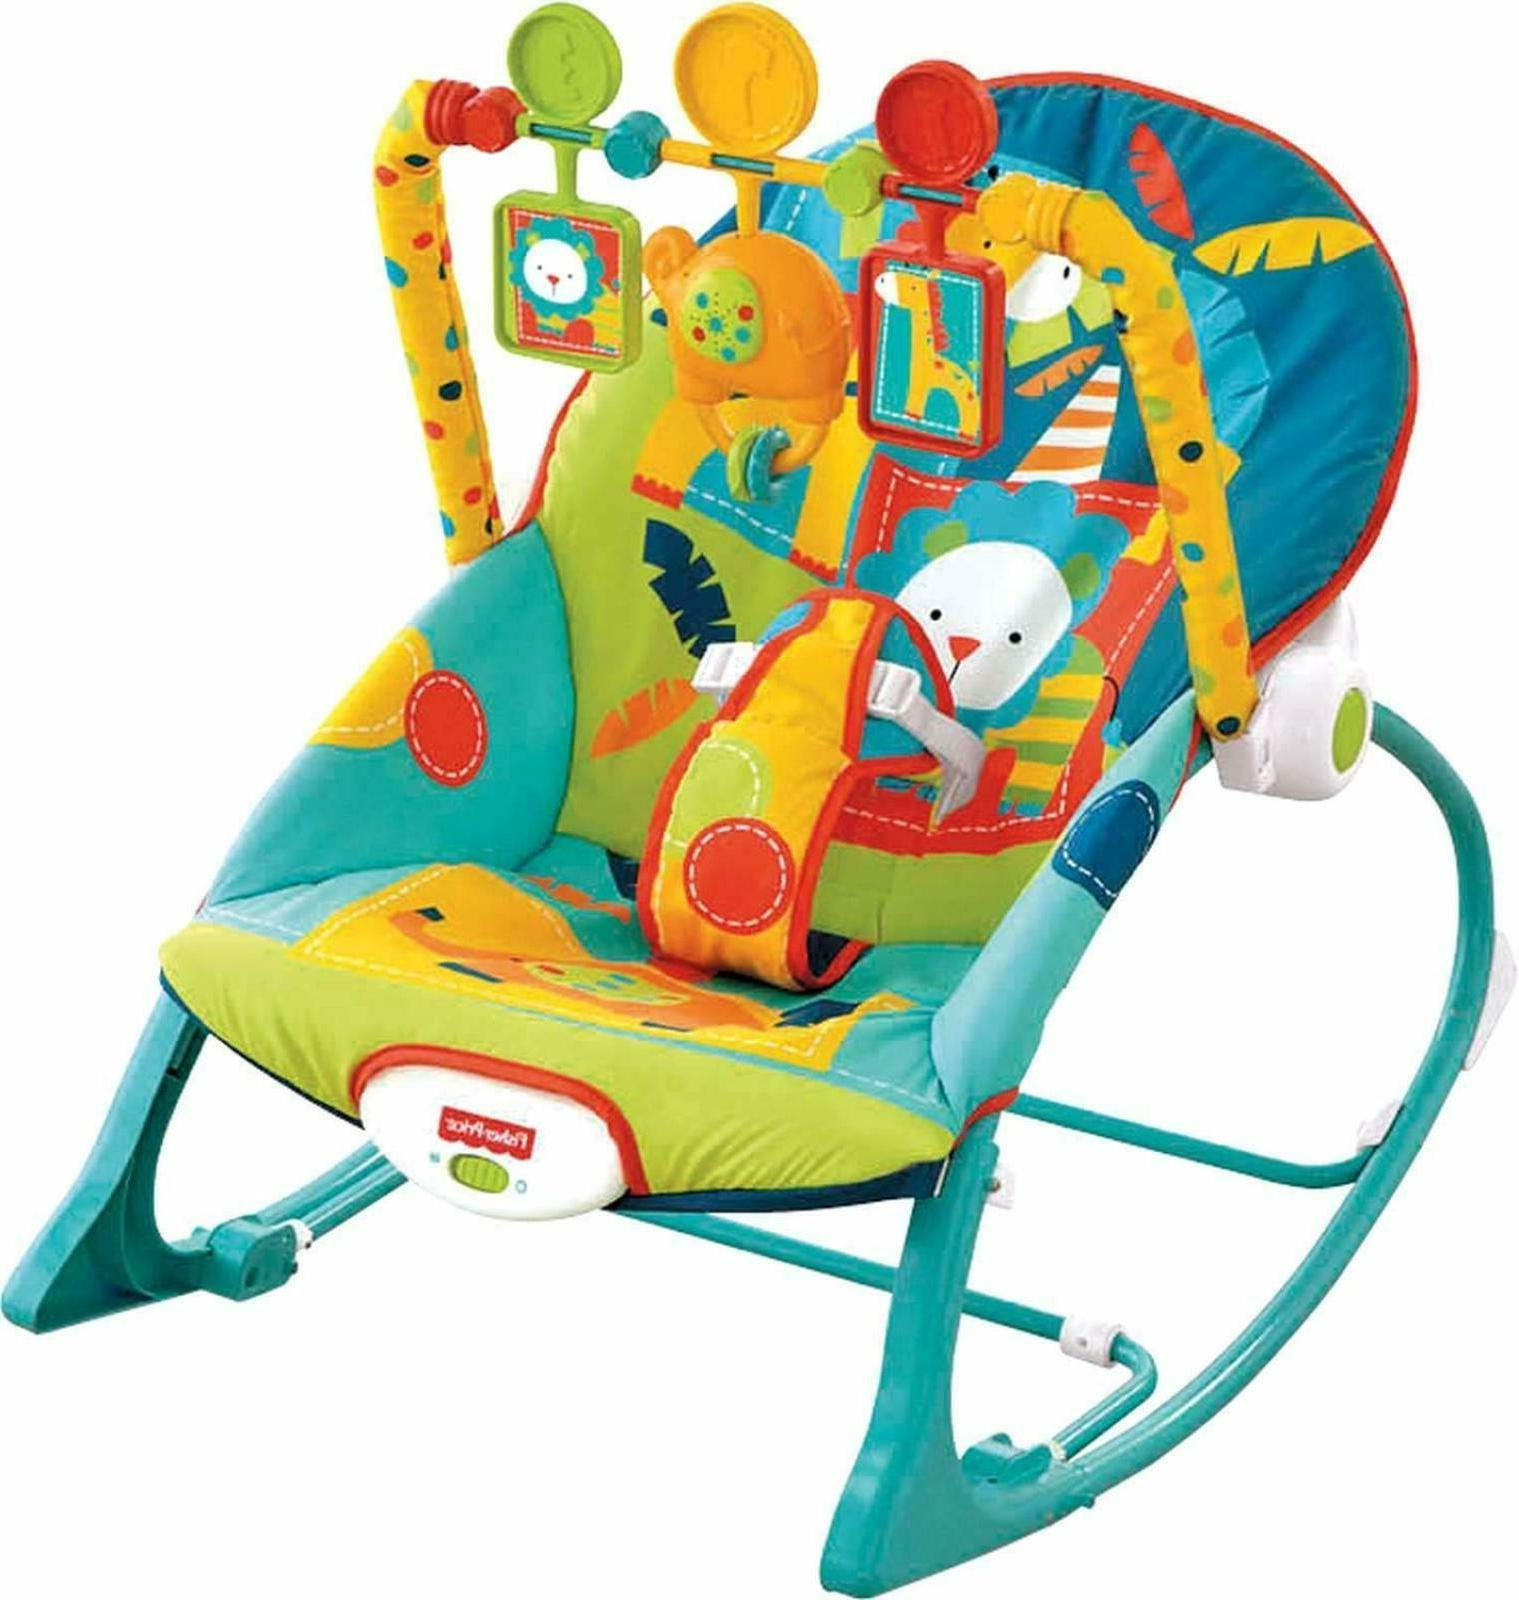 Astounding Baby Rocker Chair Newborn Infant Toddler Rocking Bunting Onthecornerstone Fun Painted Chair Ideas Images Onthecornerstoneorg